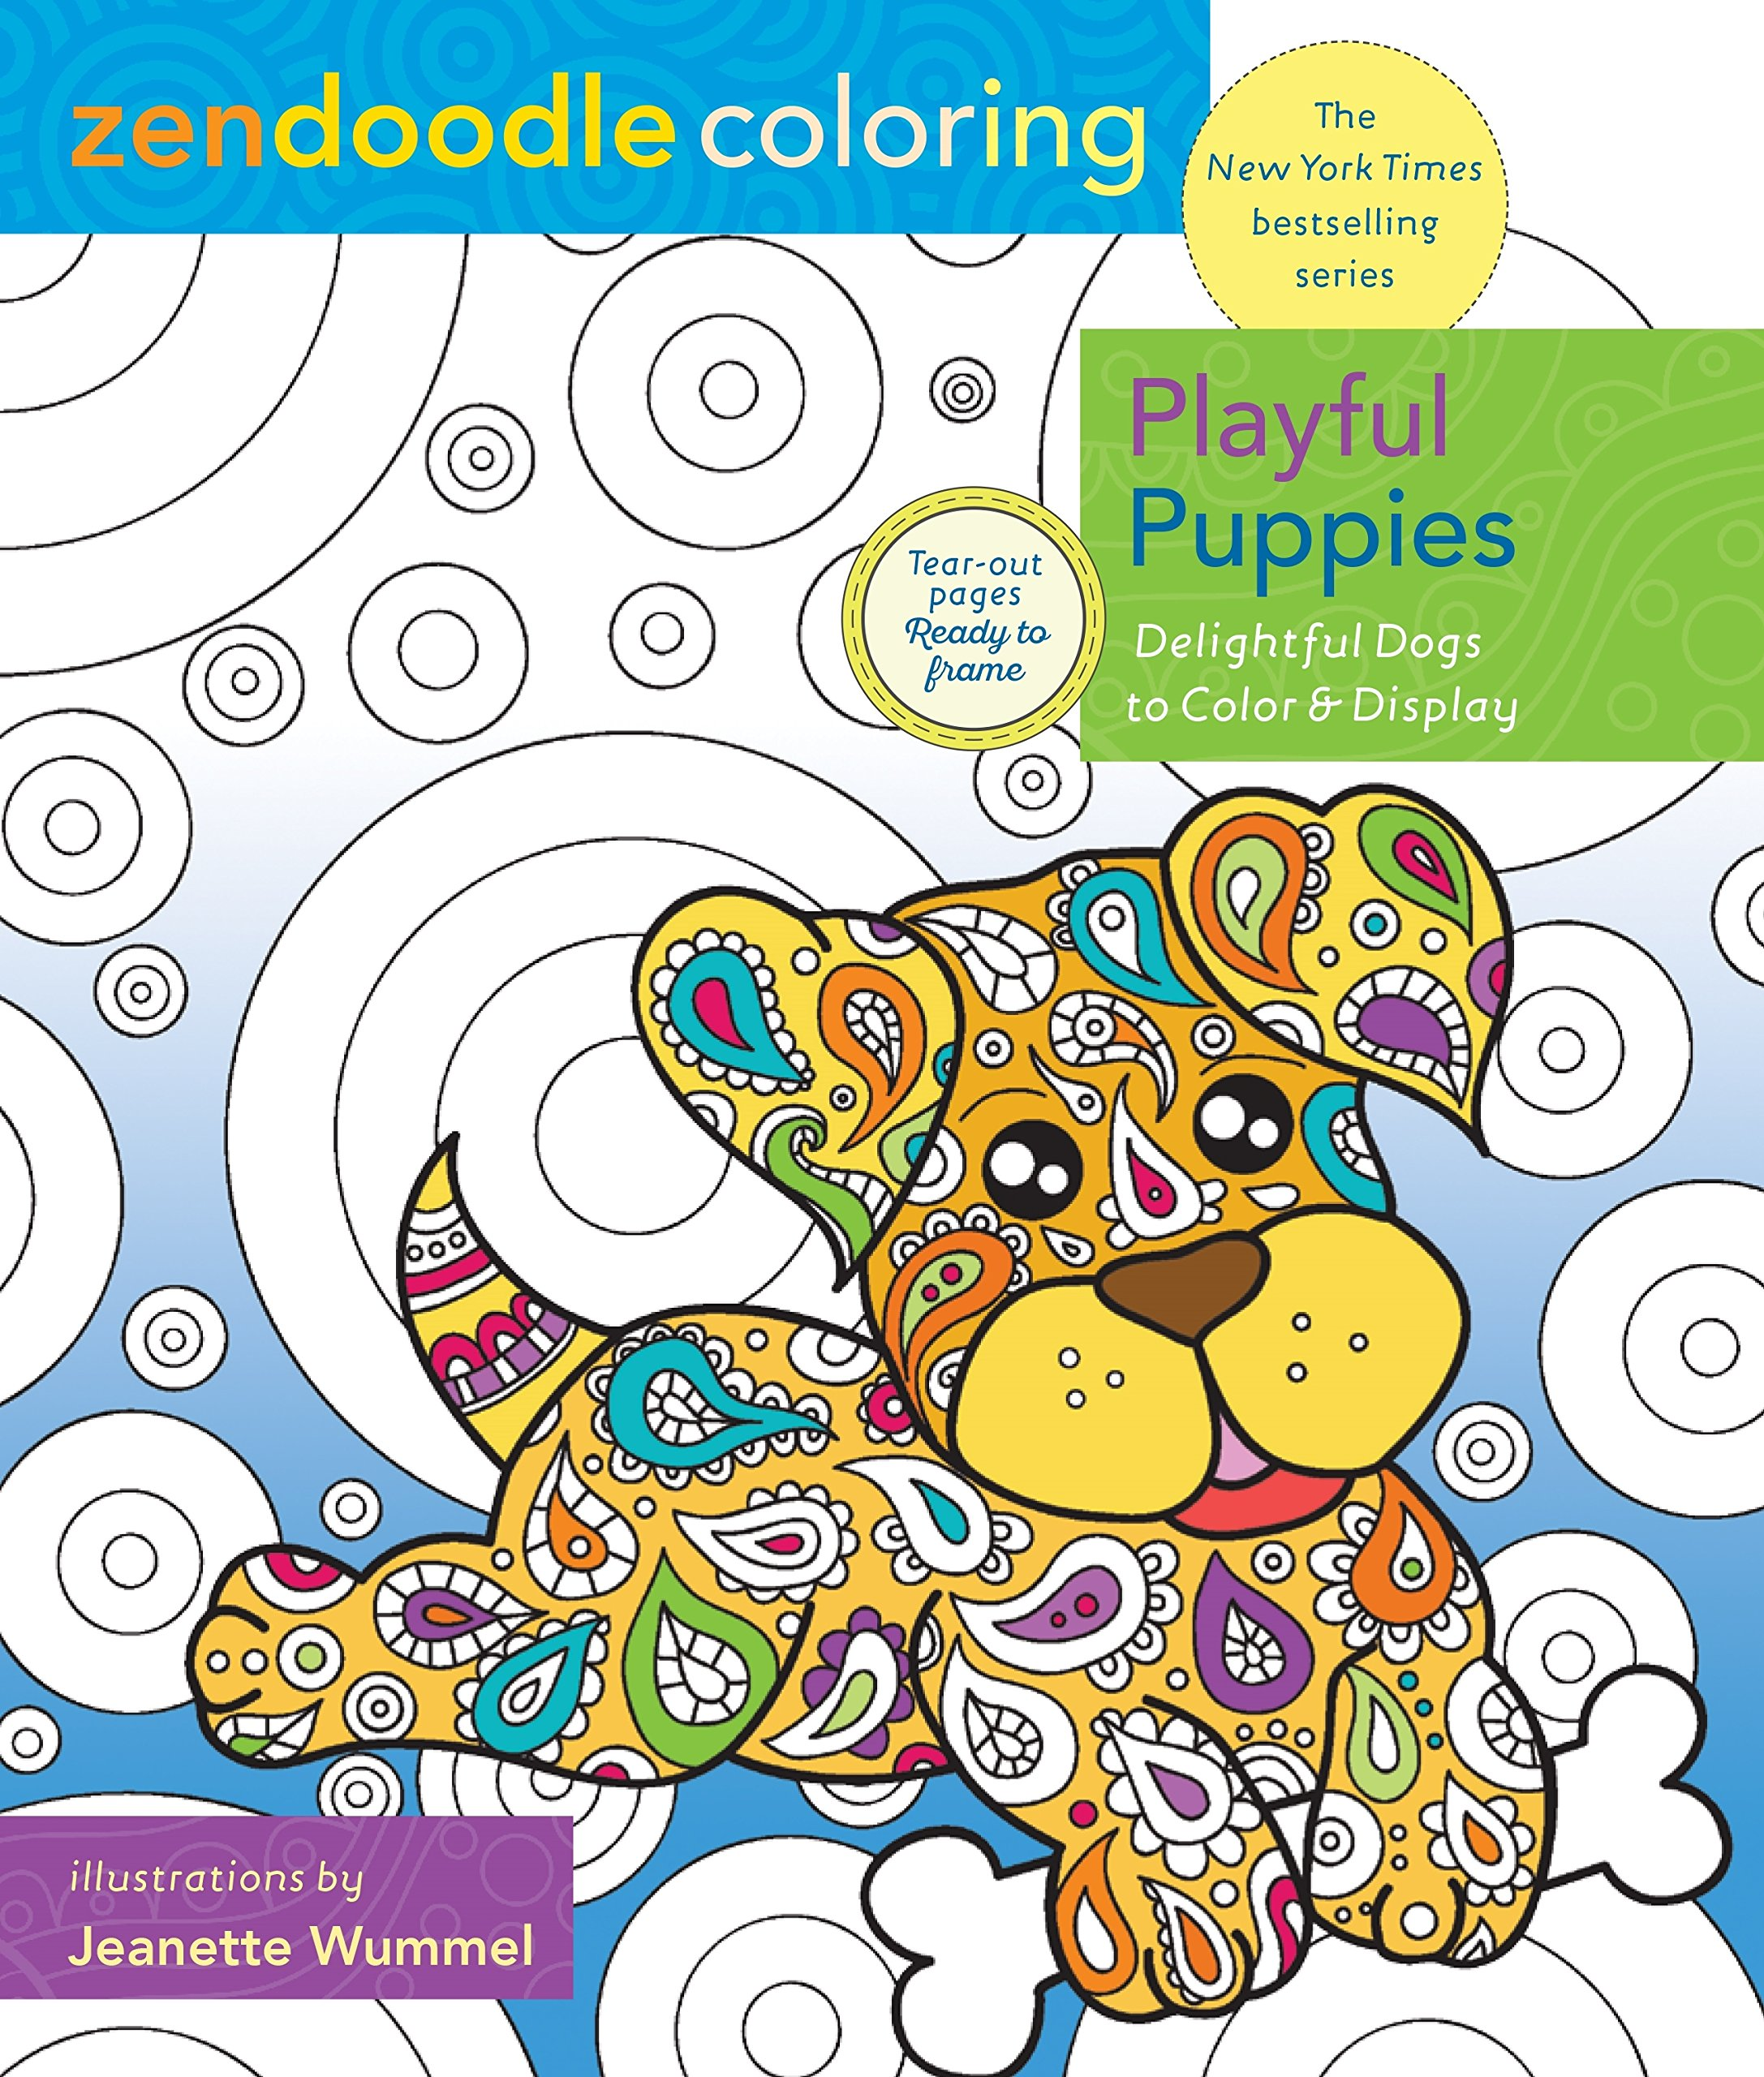 Amazon.com: Zendoodle Coloring: Playful Puppies: Delightful Dogs to ...